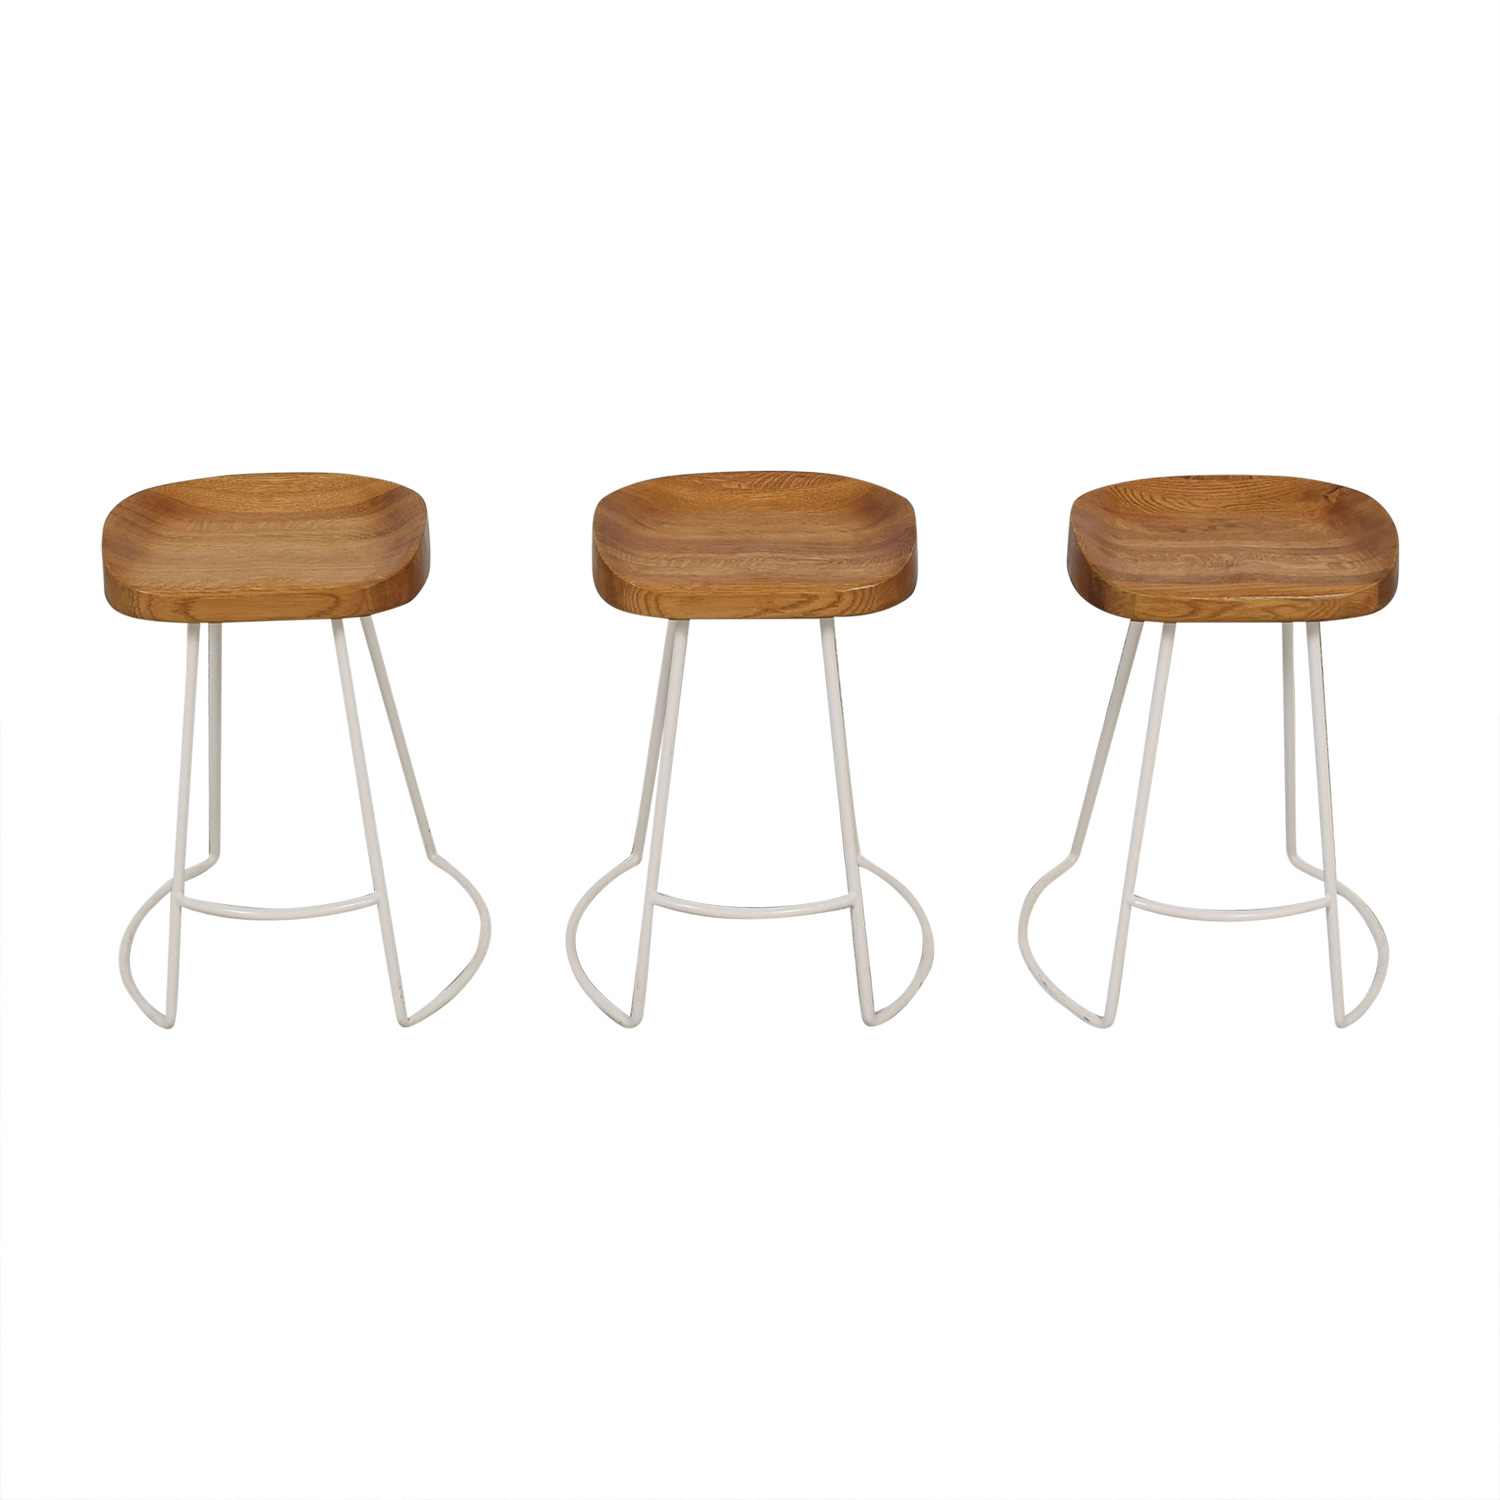 Wisteria Wisteria Natural Smart and Sleek Counter Stools pa